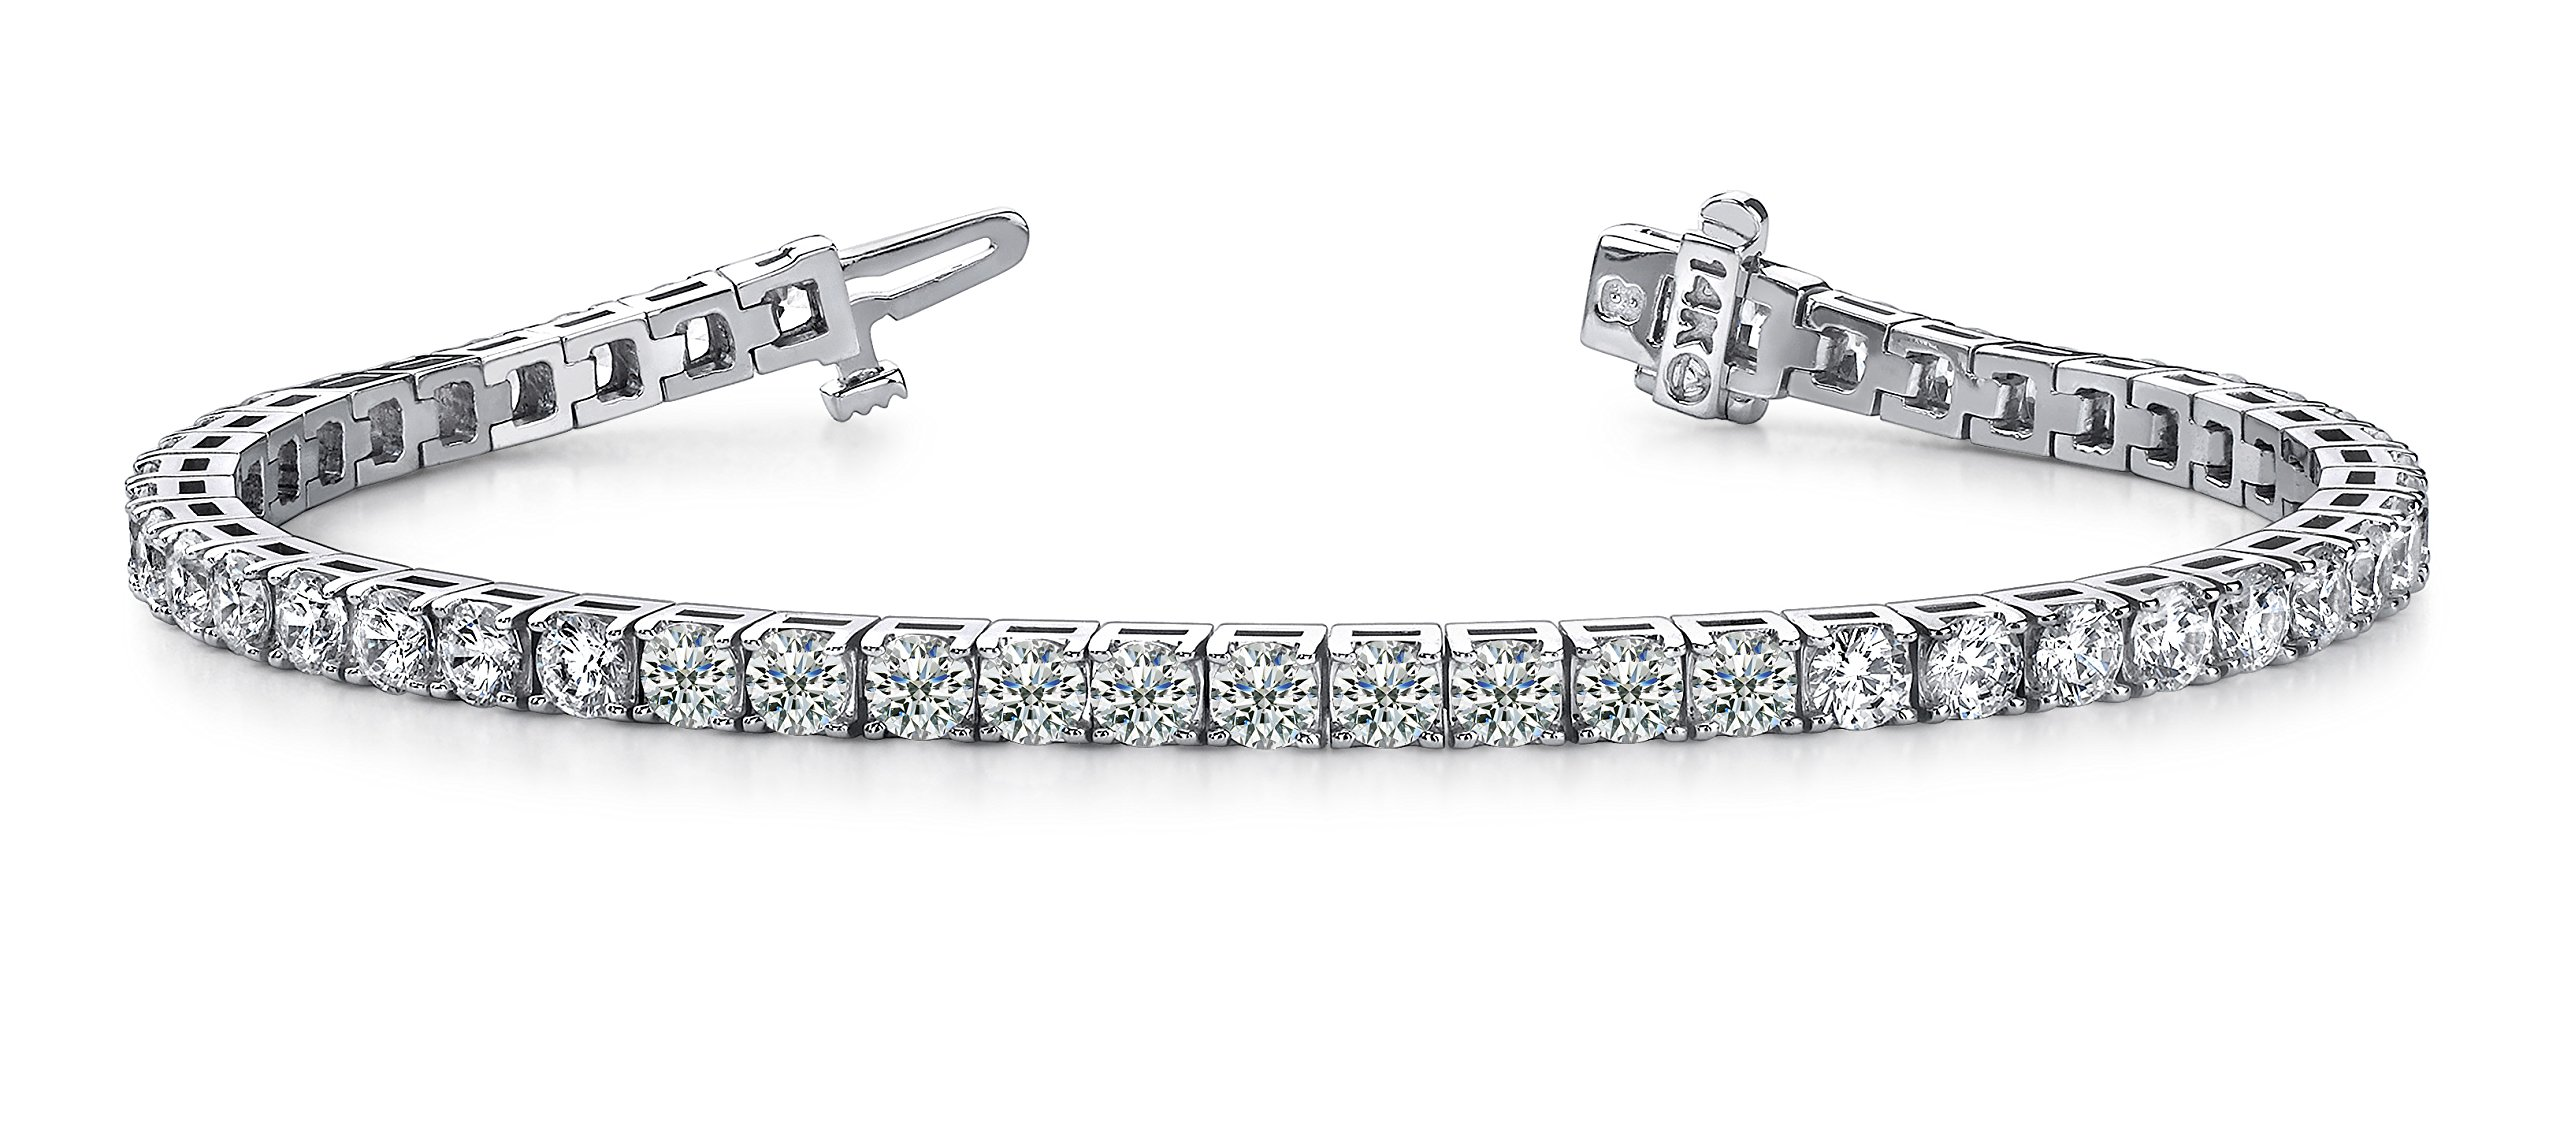 6 Carat Classic Diamond Tennis Bracelet 14K White Gold Ultra Premium Collection